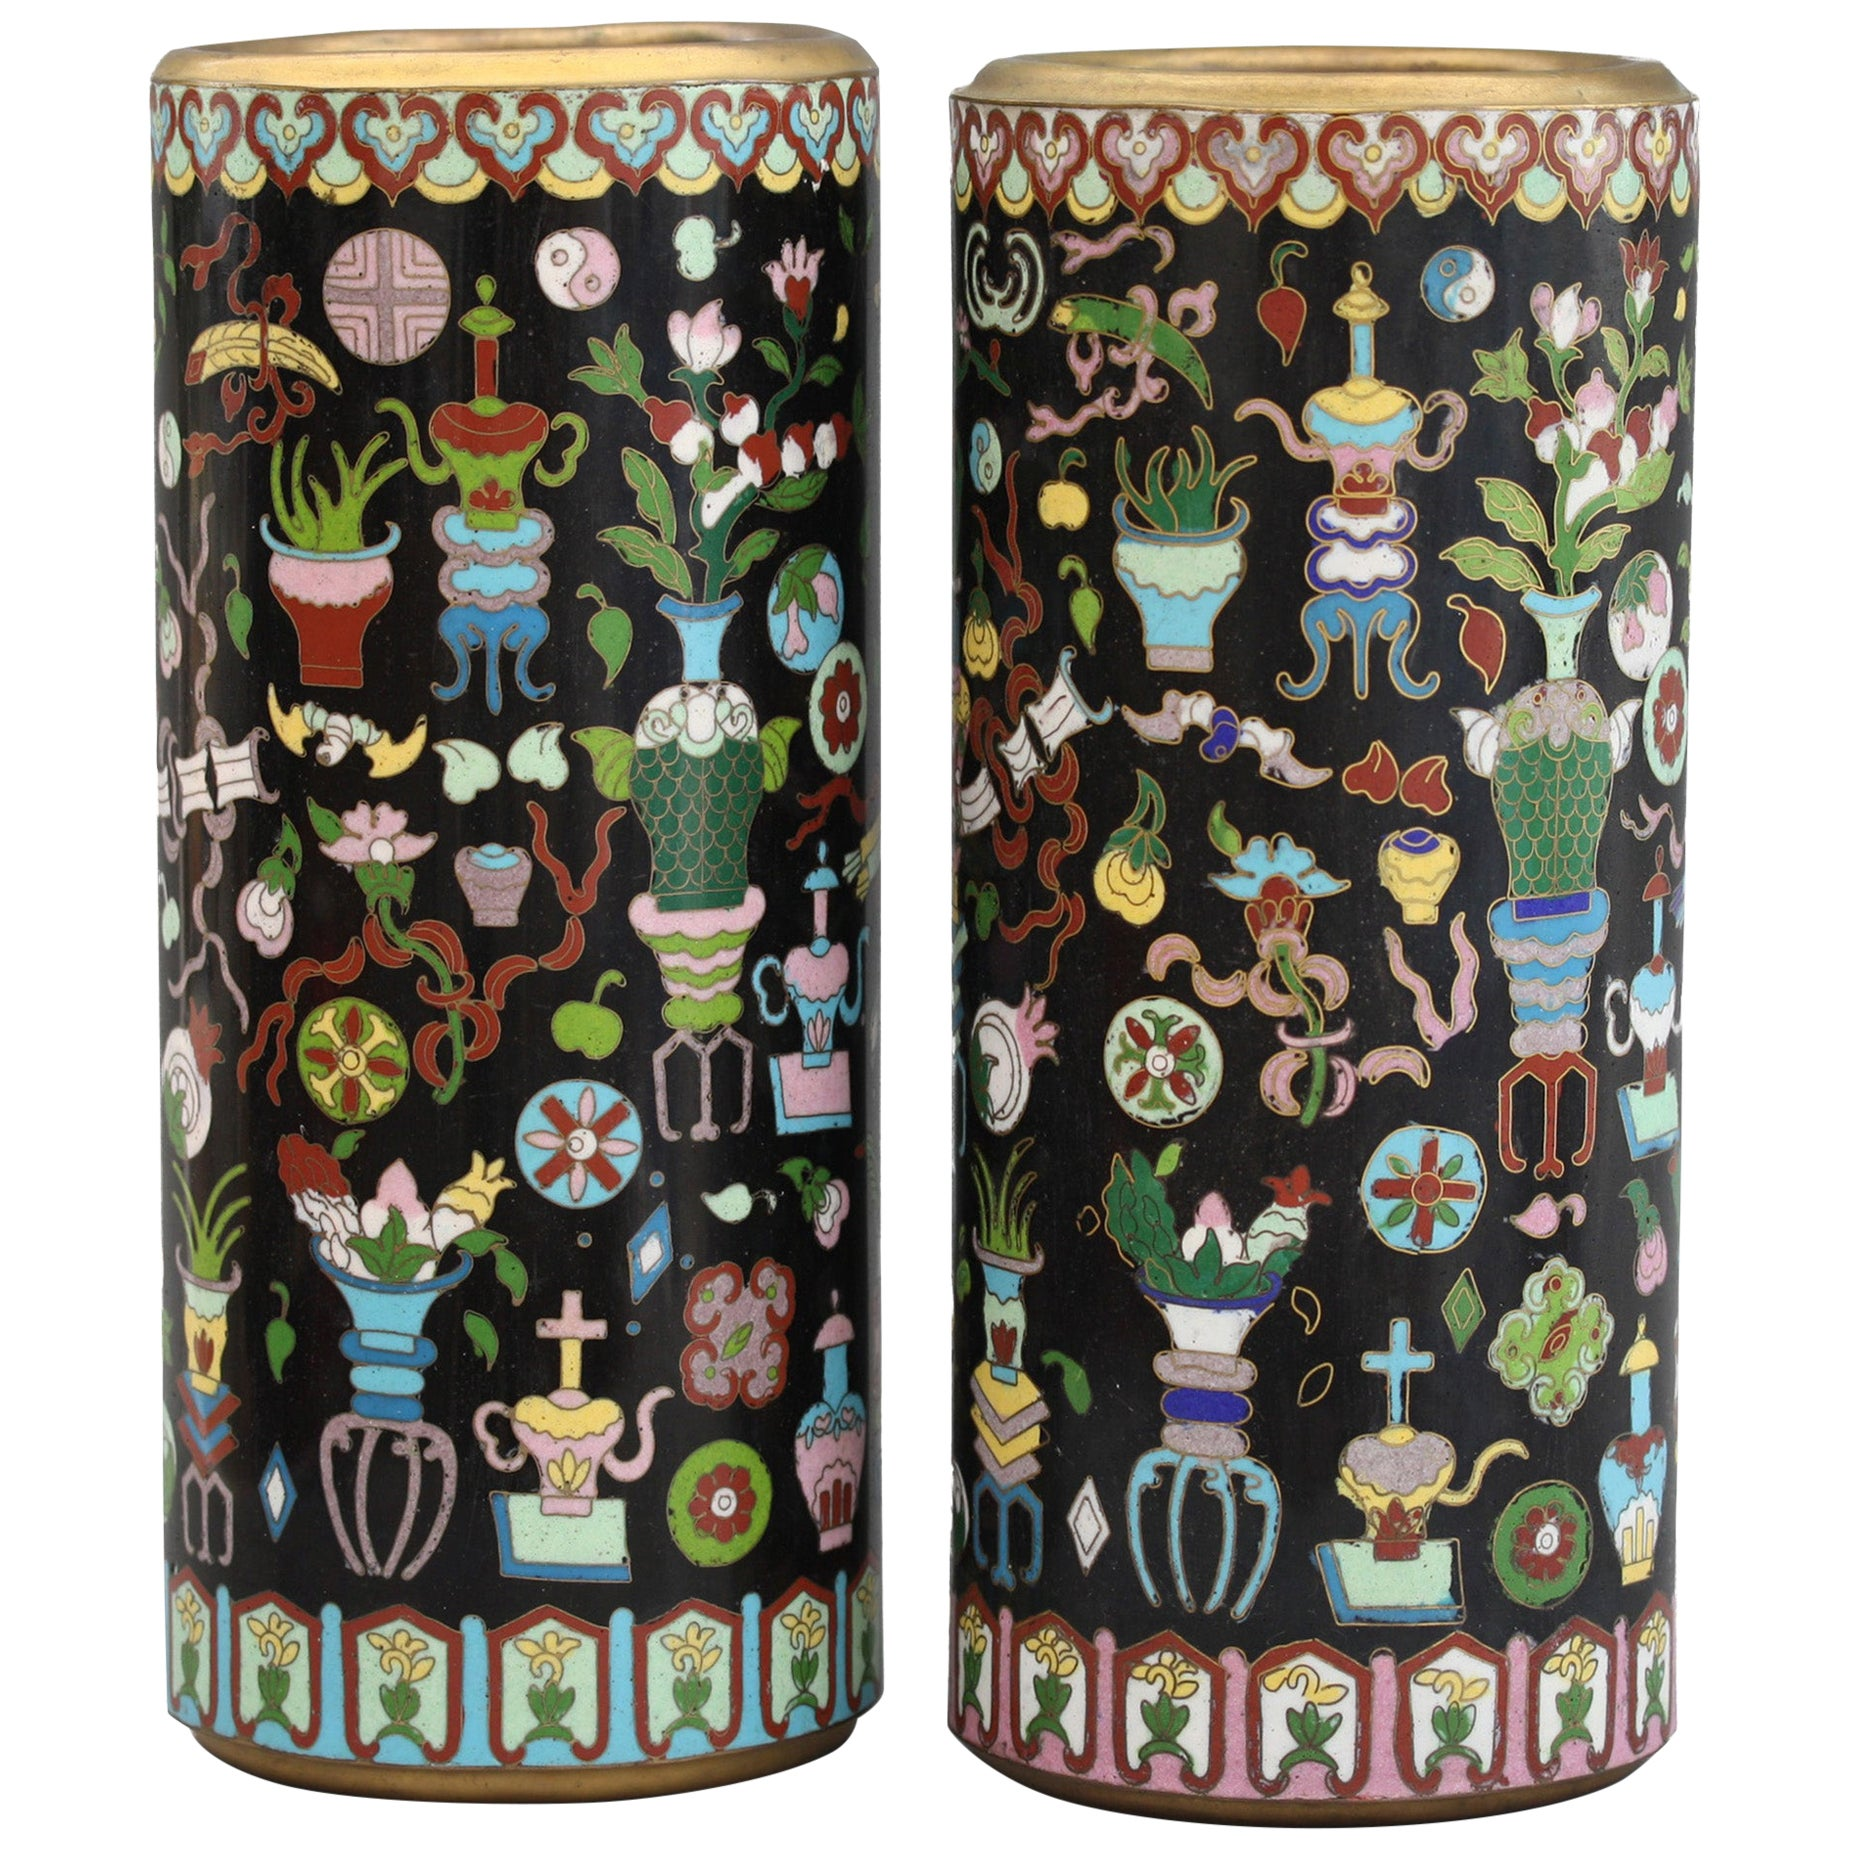 Pair of Chinese Cloisonné Cylindrical Precious Object Vases